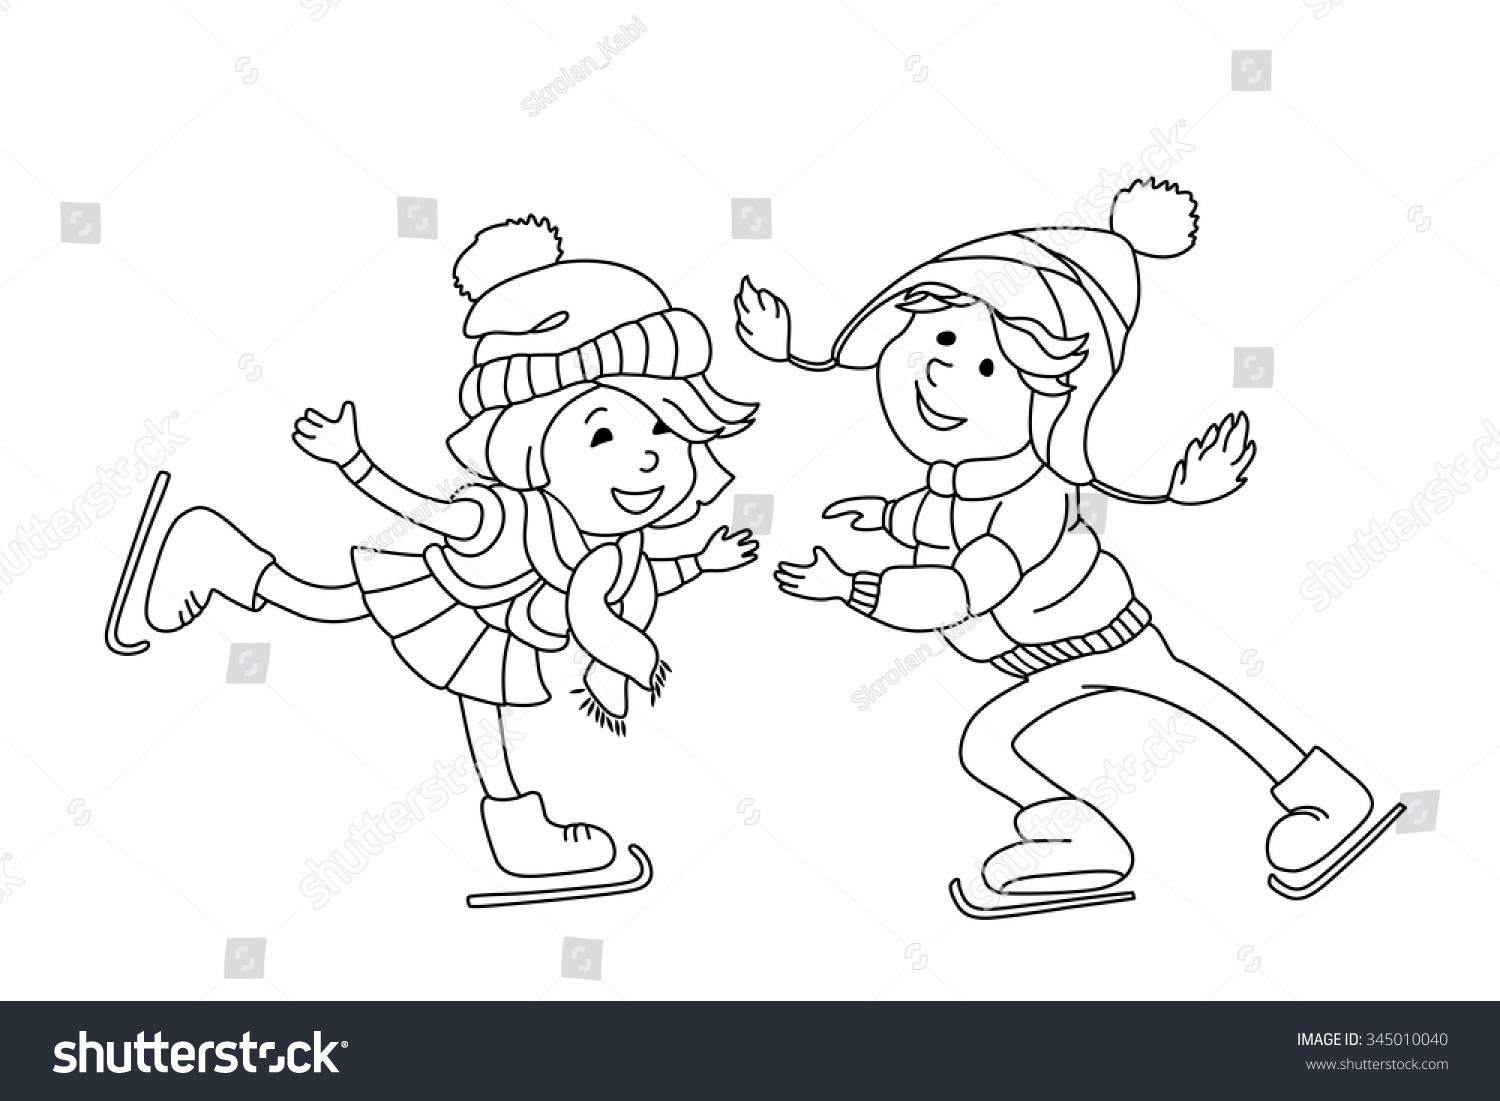 Boys Skating In Winter Coloring Pages  Boy And Girl Skating Ice Outline Cartoon Character For